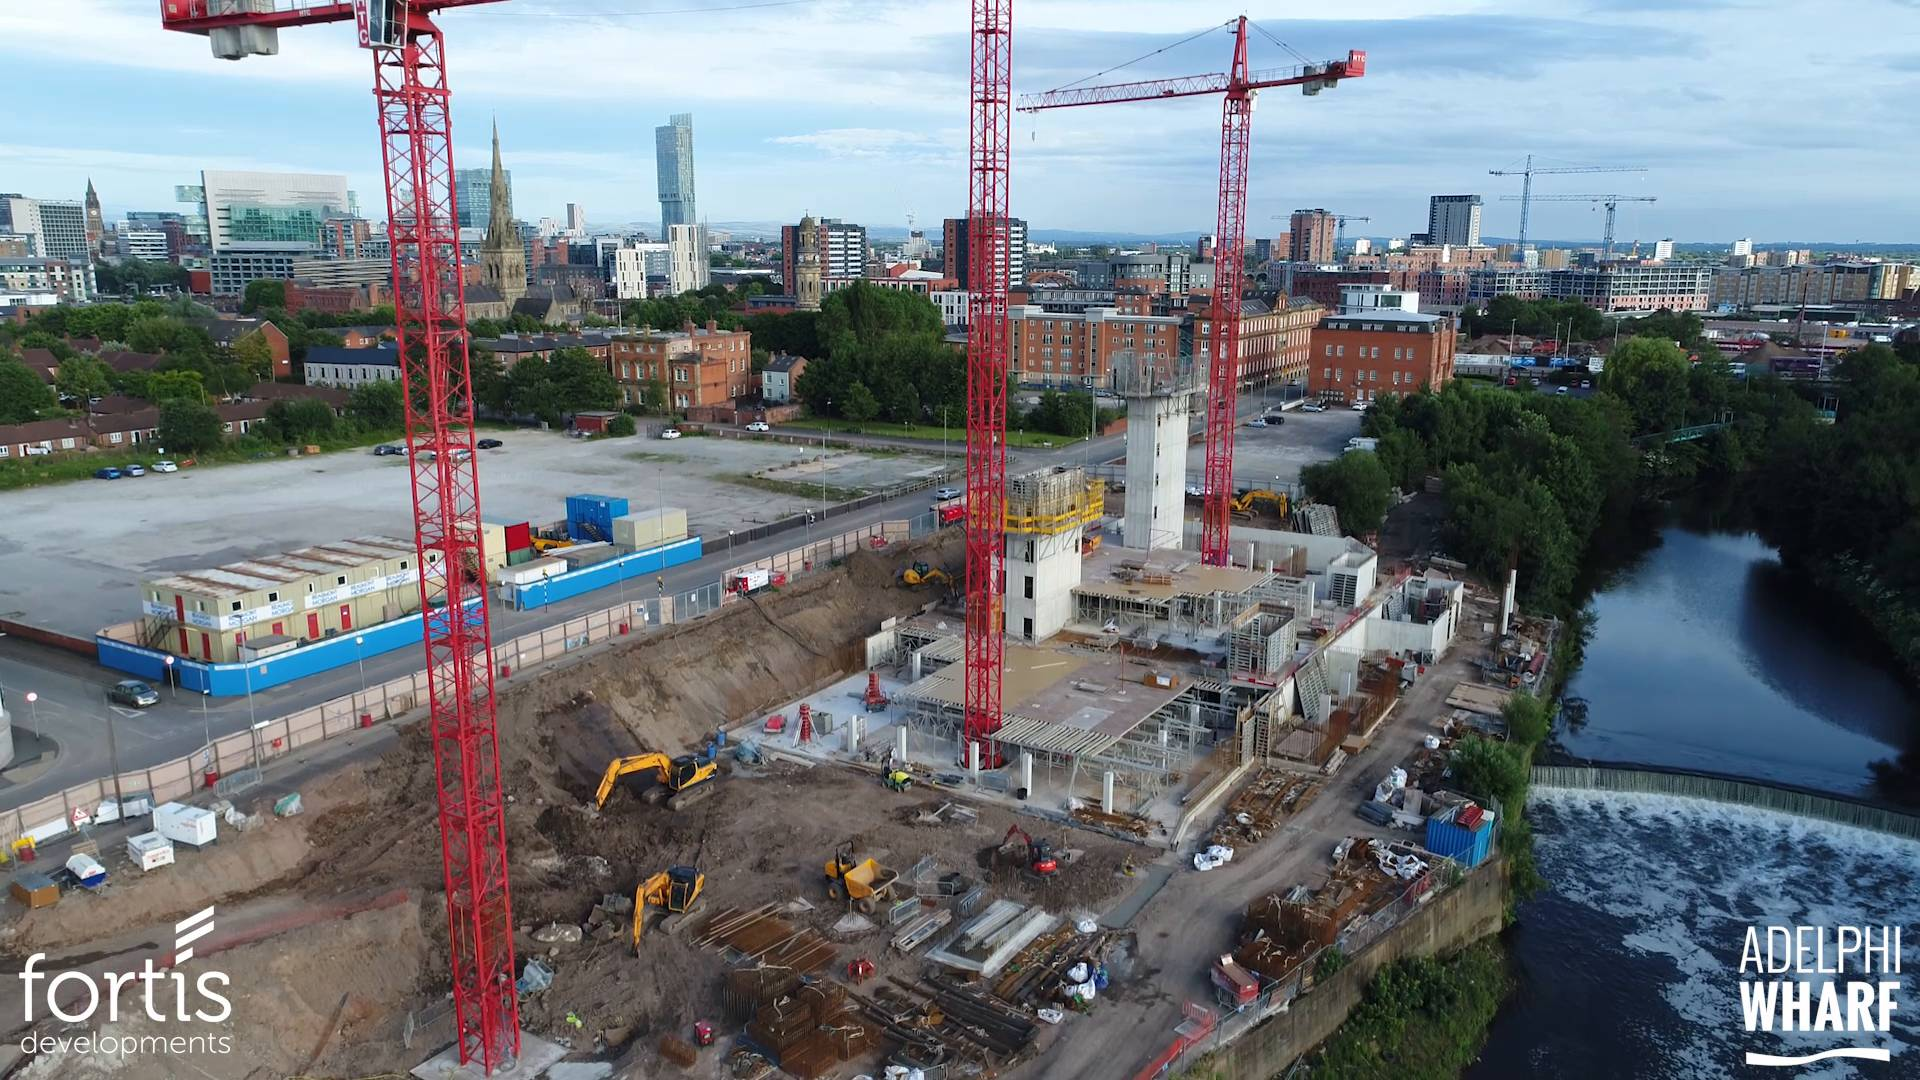 Adelphi Wharf Phase 3 - Drone Footage - July 2017